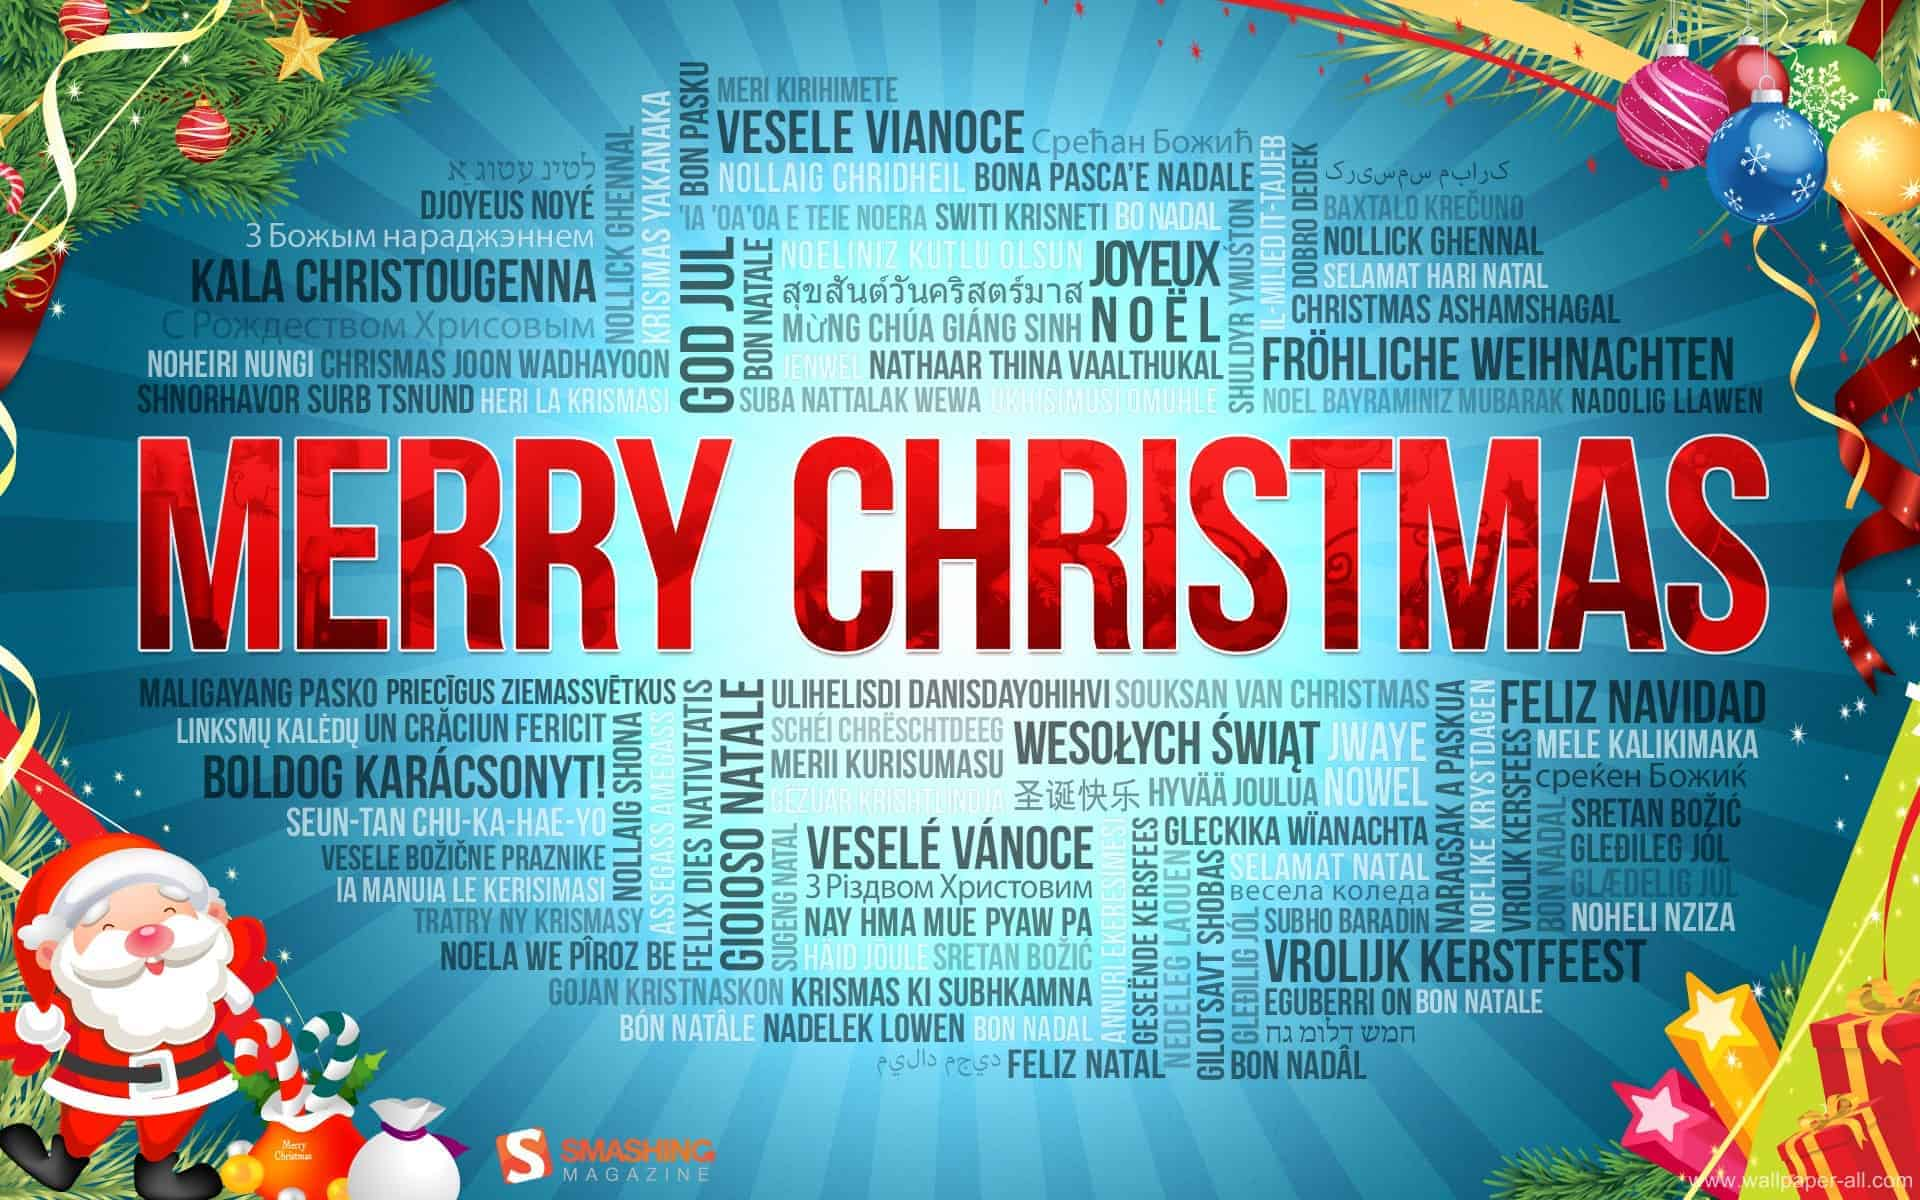 https://i2.wp.com/termcoord.eu/wp-content/uploads/2013/12/Merry-Christmas-In-Different-Languages.jpg